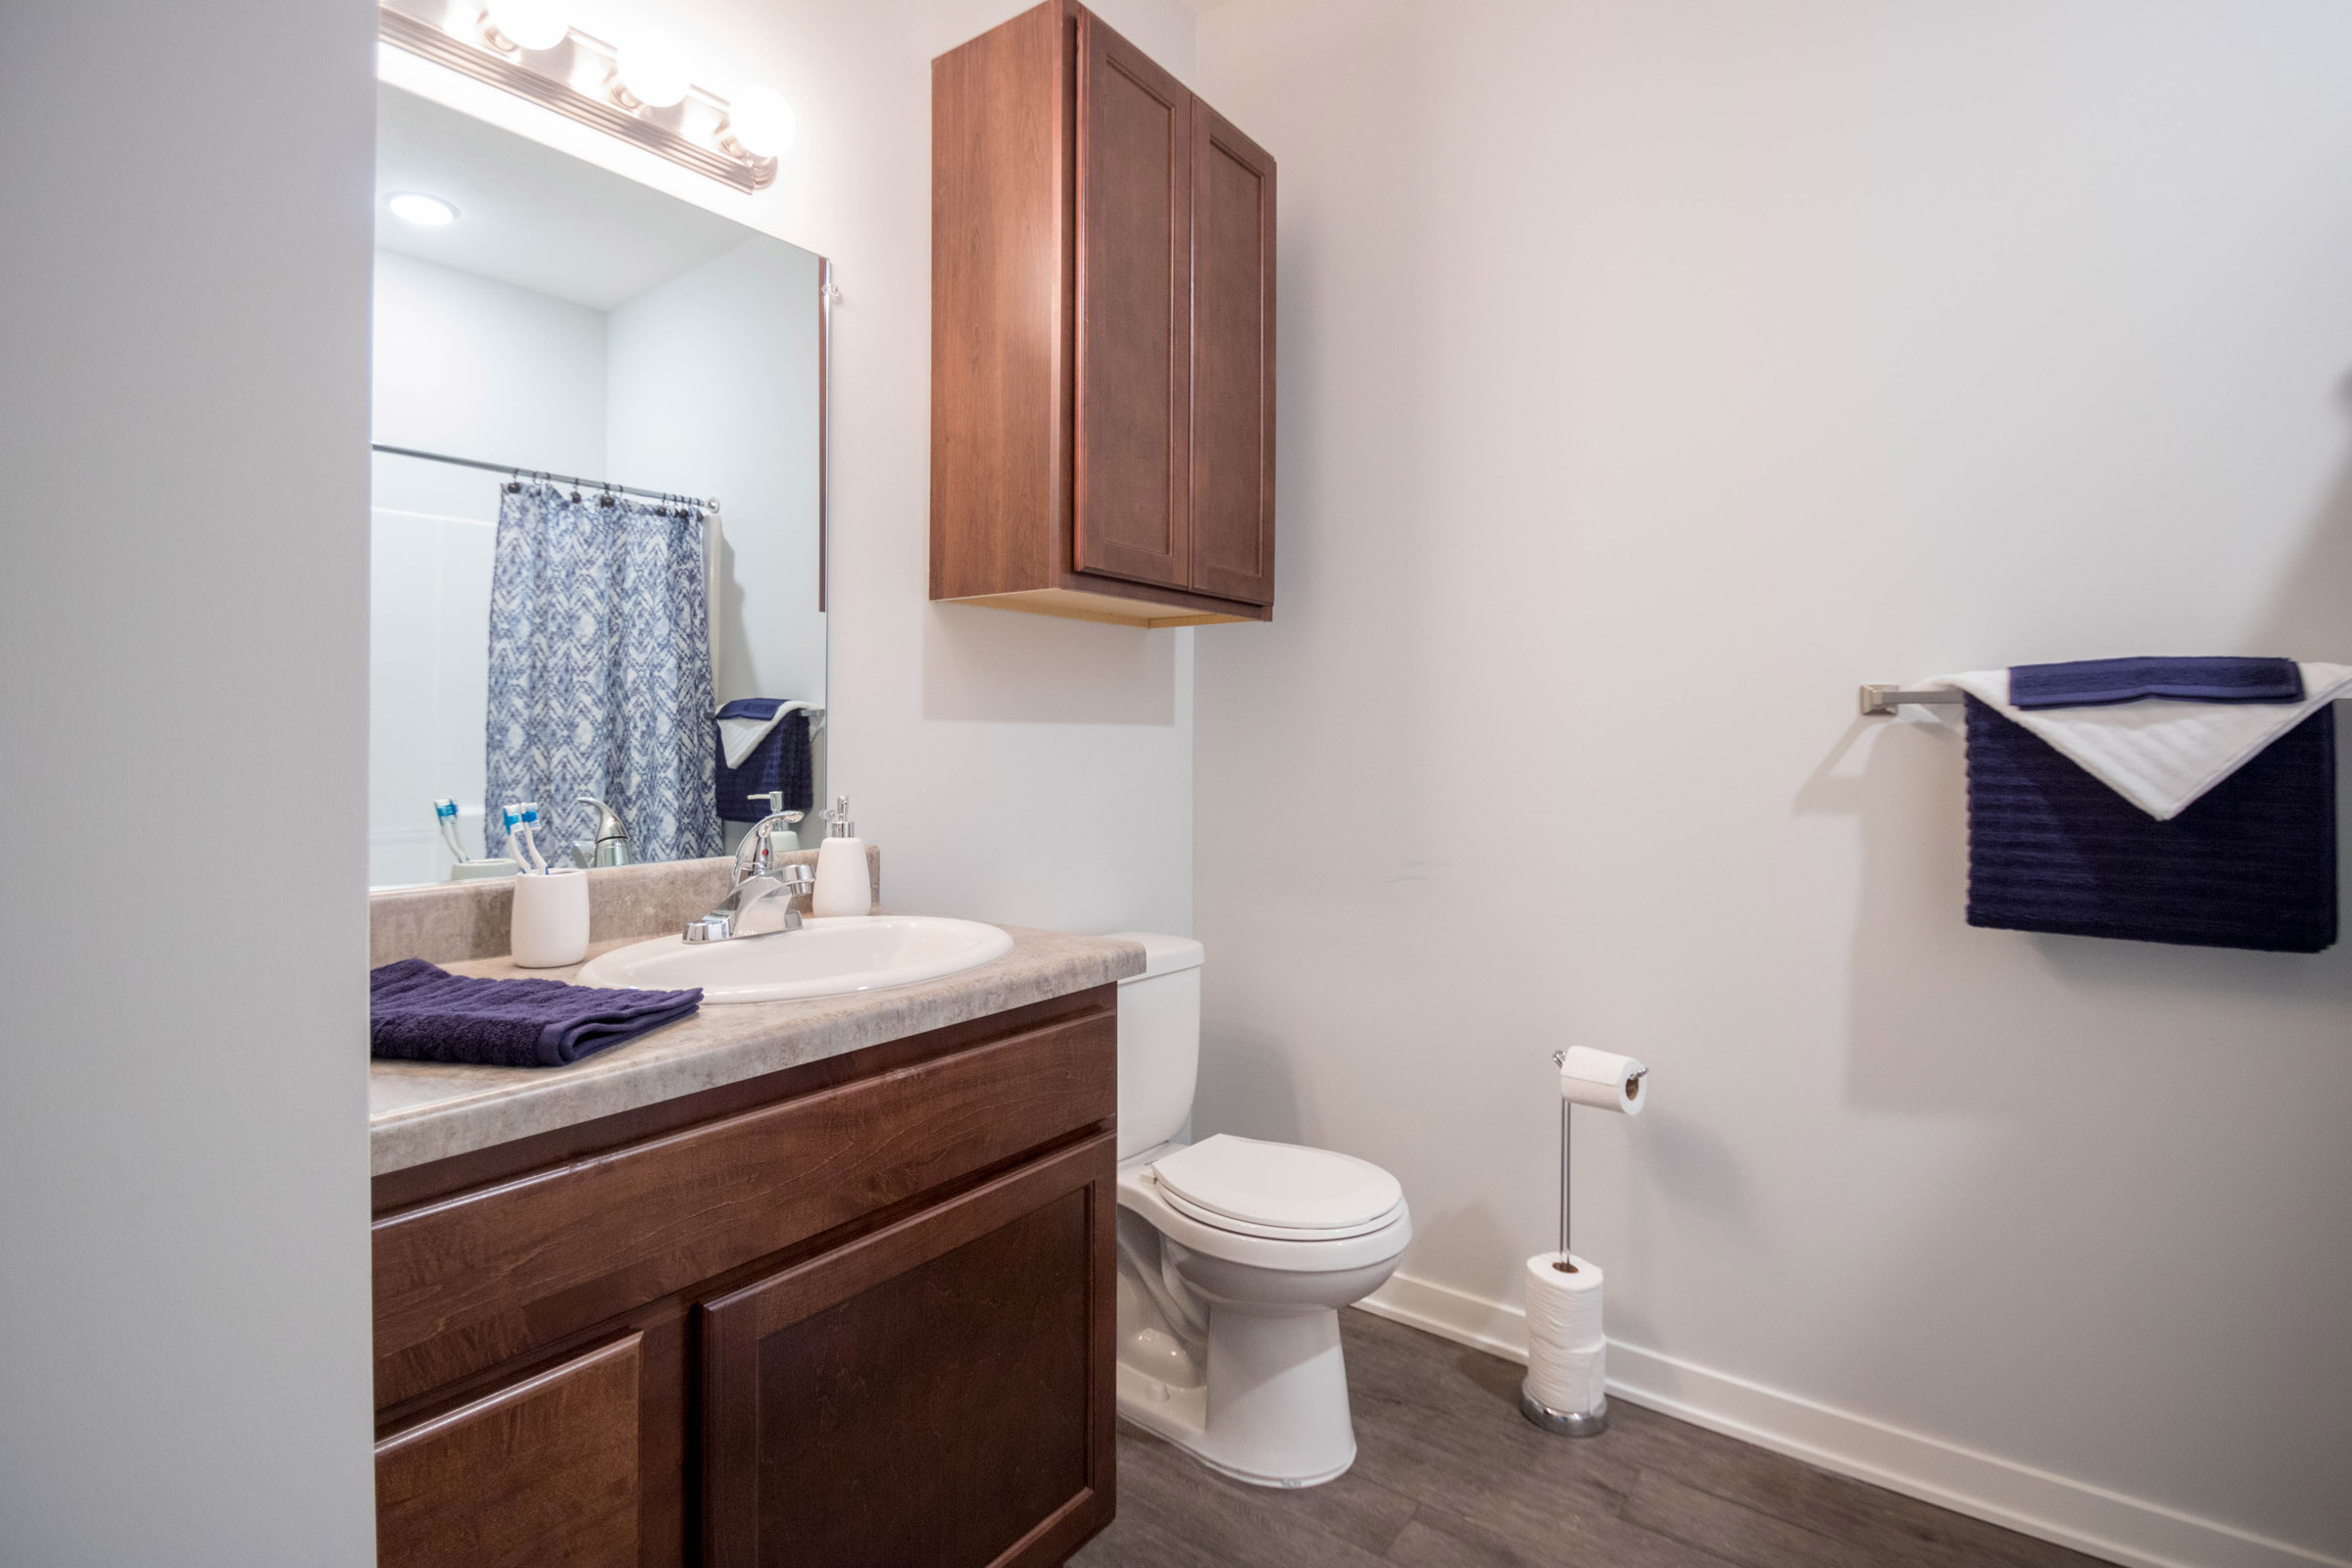 Wooden Cabinetry in Bathroom at Aspen Grove Apartments in Omaha, NE